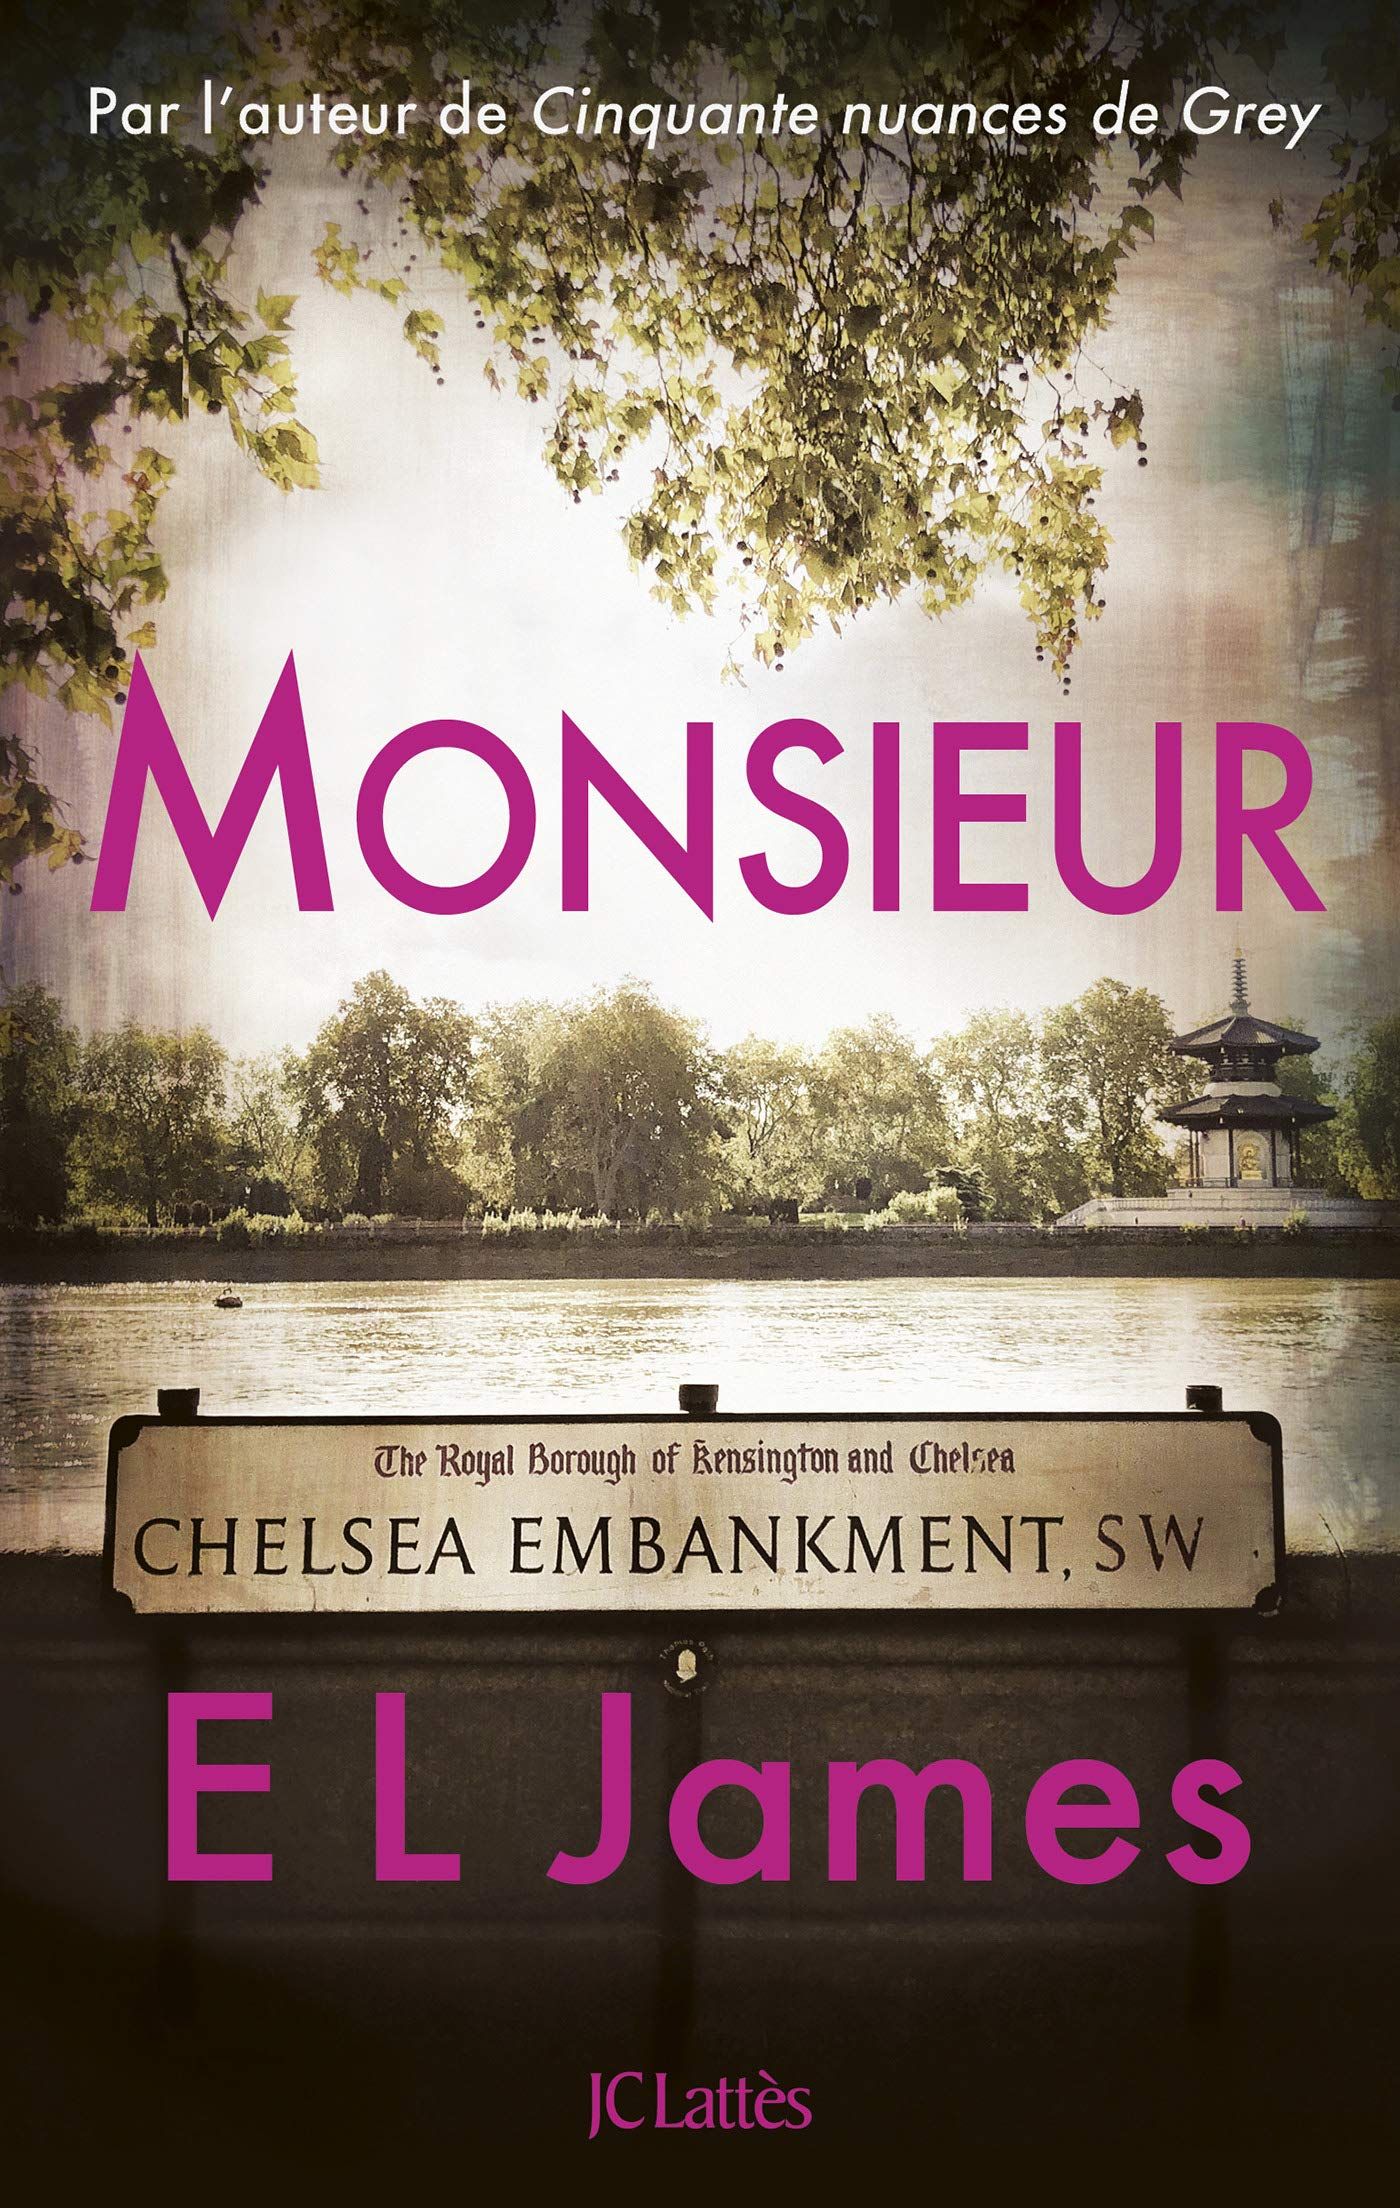 Monsieur de E.L James 81oflRoYsrL